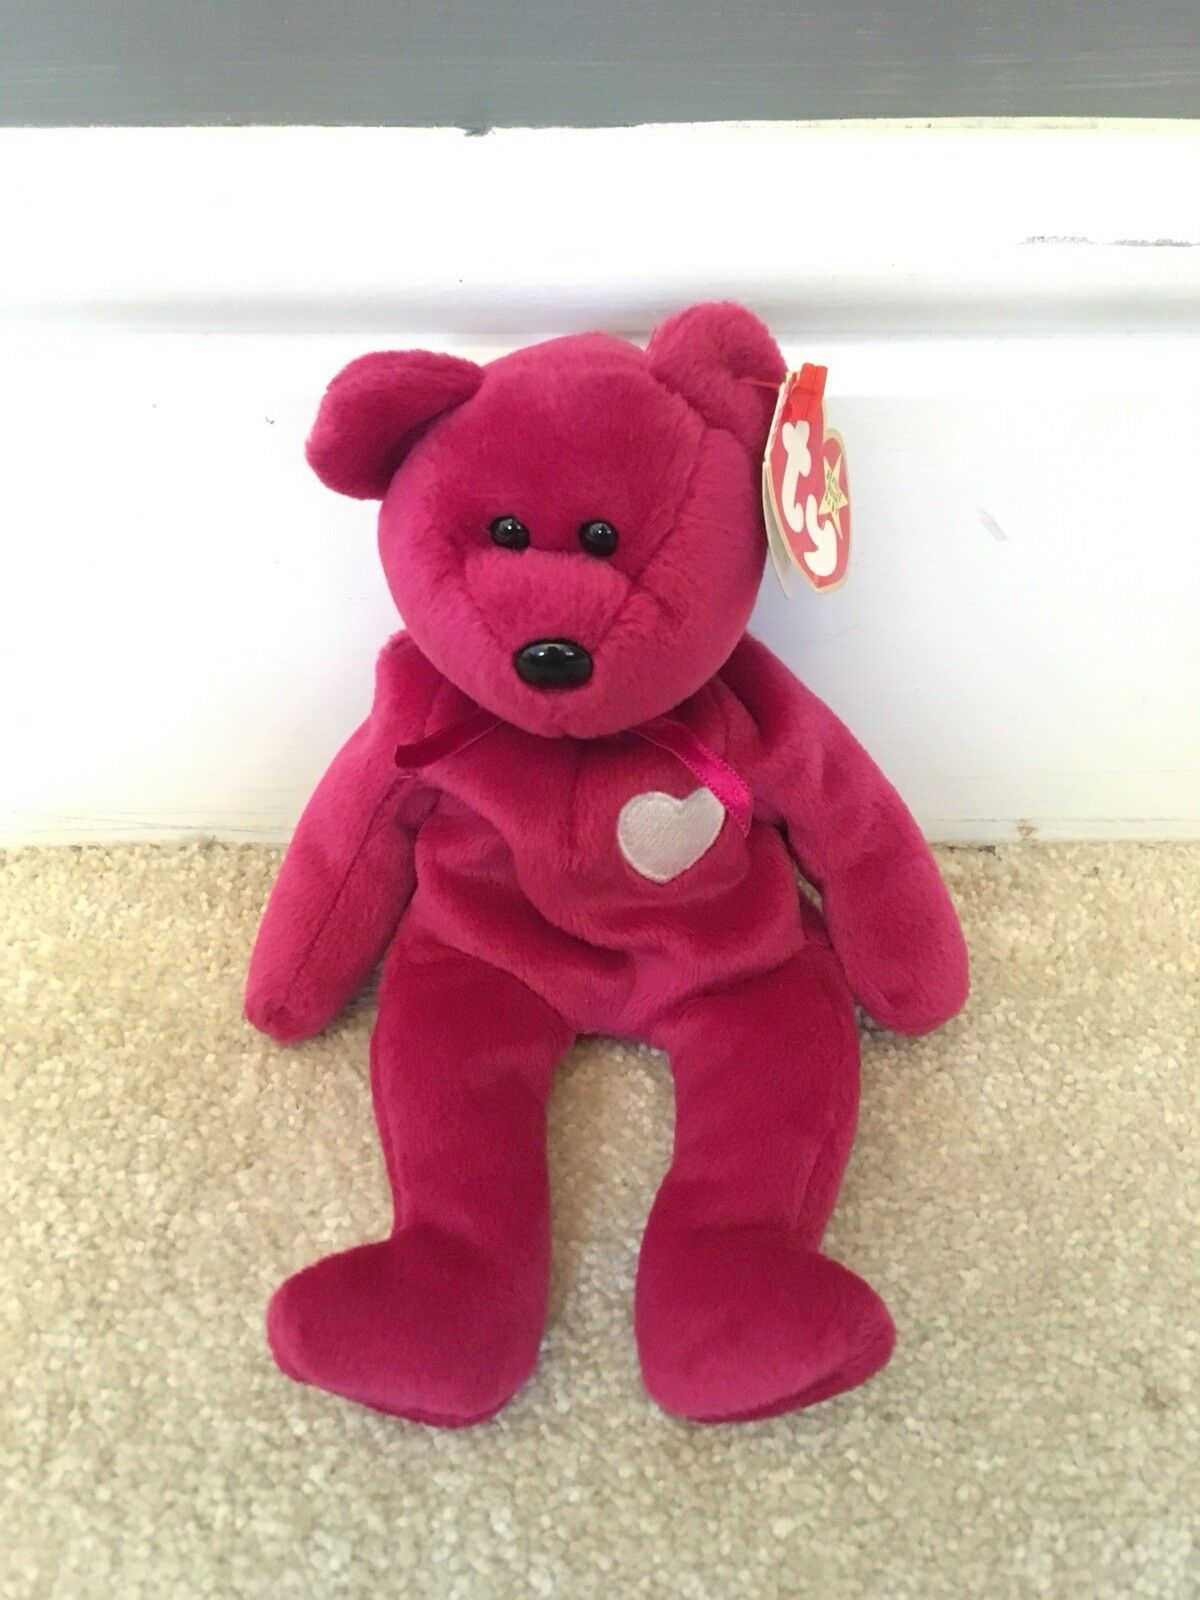 Extremely rare (1999) Ty Beanie Baby Valentina with year discrepancy on tag